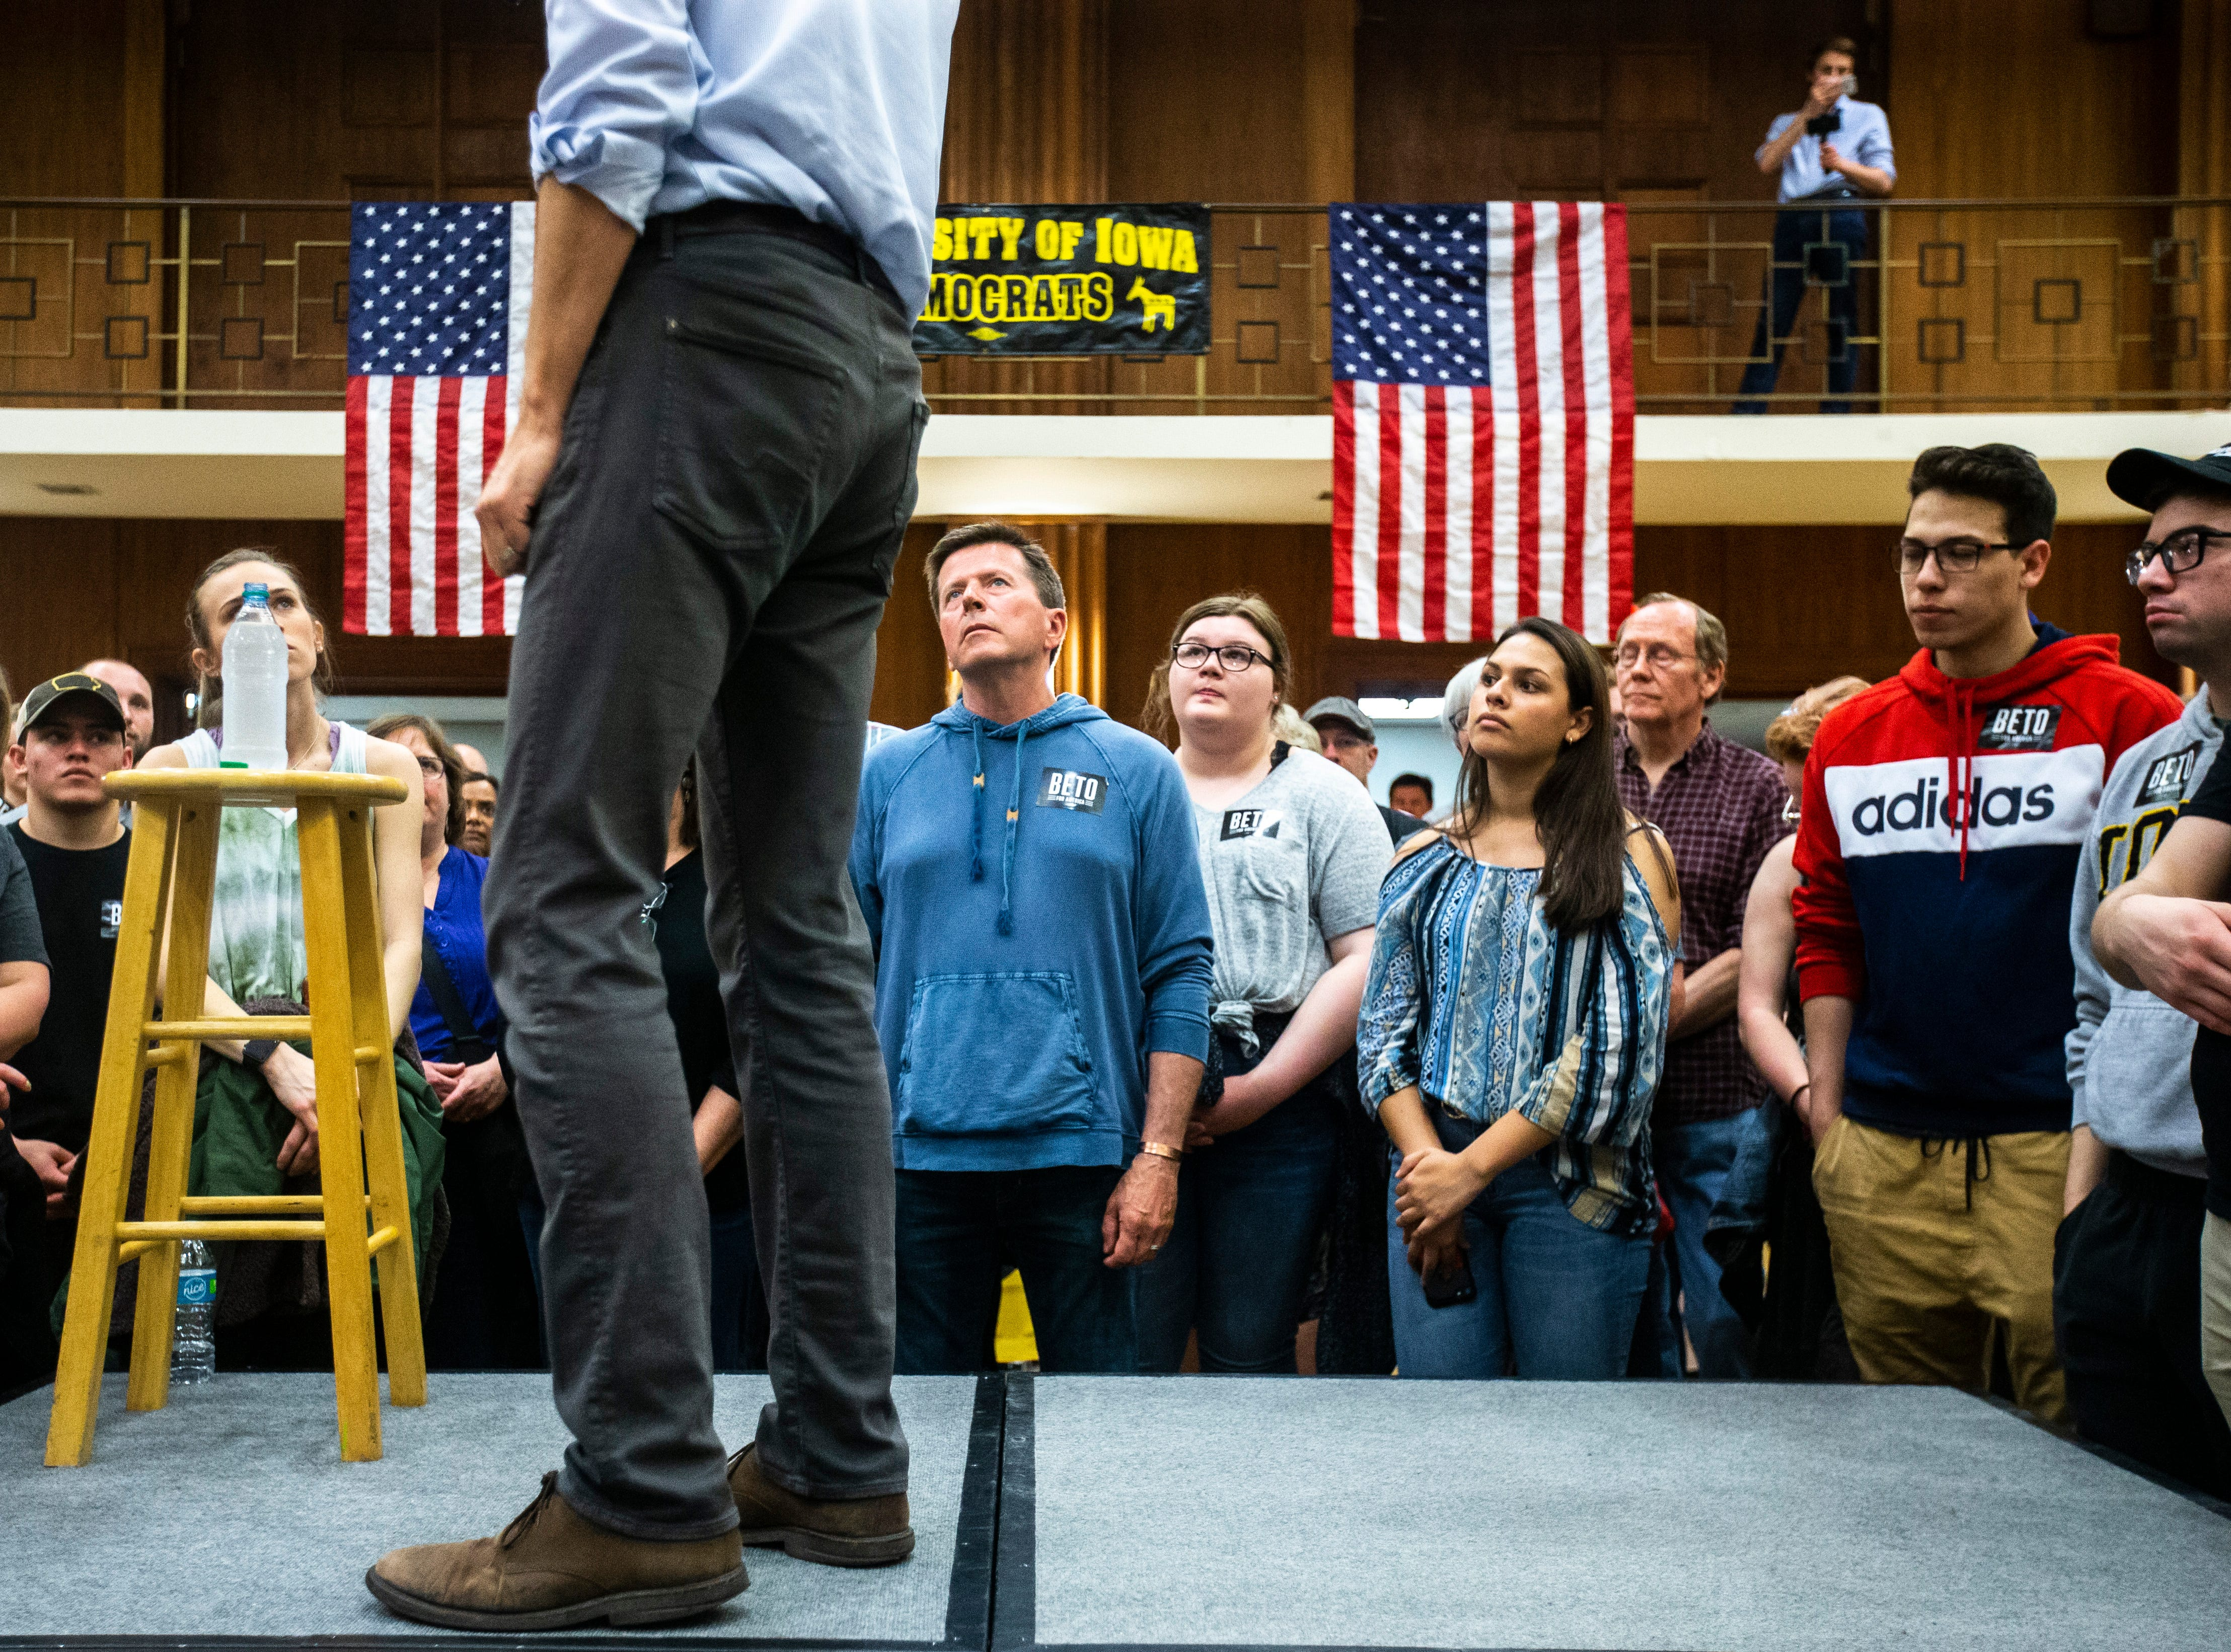 Community members listen as Democratic presidential candidate Beto O'Rourke of El Paso, Texas, speaks during a town hall event on Sunday, April 7, 2019, in the second floor ballroom at the Iowa Memorial Union on the University of Iowa campus in Iowa City, Iowa.